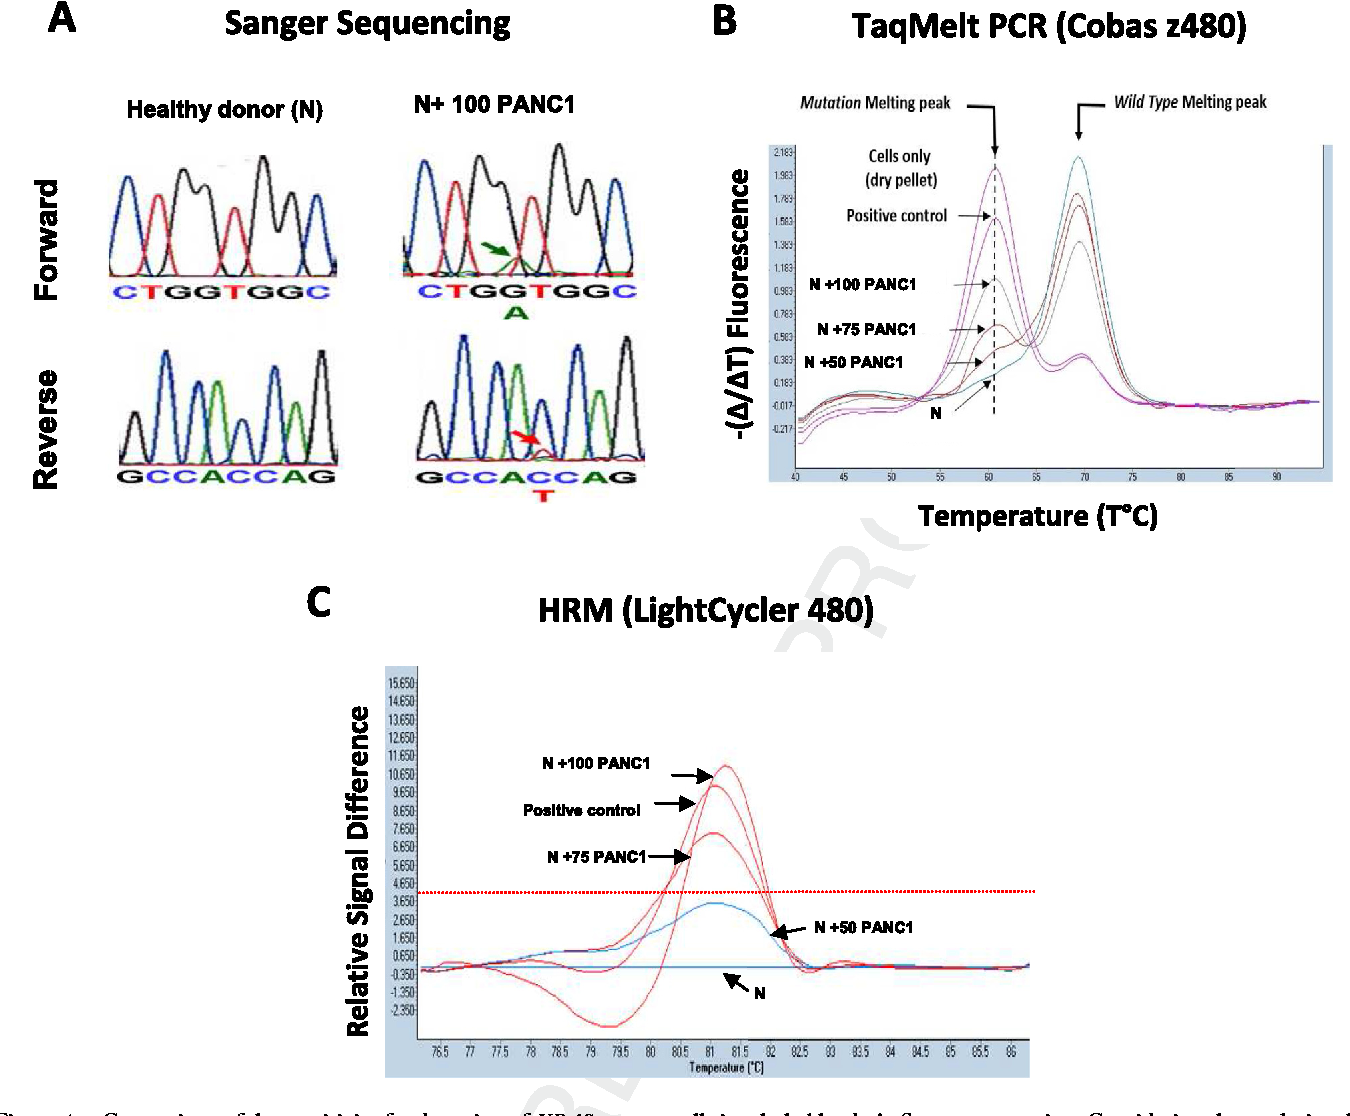 Figure 4 e Comparison of the sensitivity for detection of KRAS mutant cells in whole blood. A. Sanger sequencing. Considering the weak signal, the detection limit is close to 100 cells. As control, no signal was detected in blood from healthy donors or in blood spiked with 50 PANC1 cells. B. TaqMeltPCR: The presence of a mutation melting peak at the correct annealing temperature indicate the presence of KRAS mutations. The